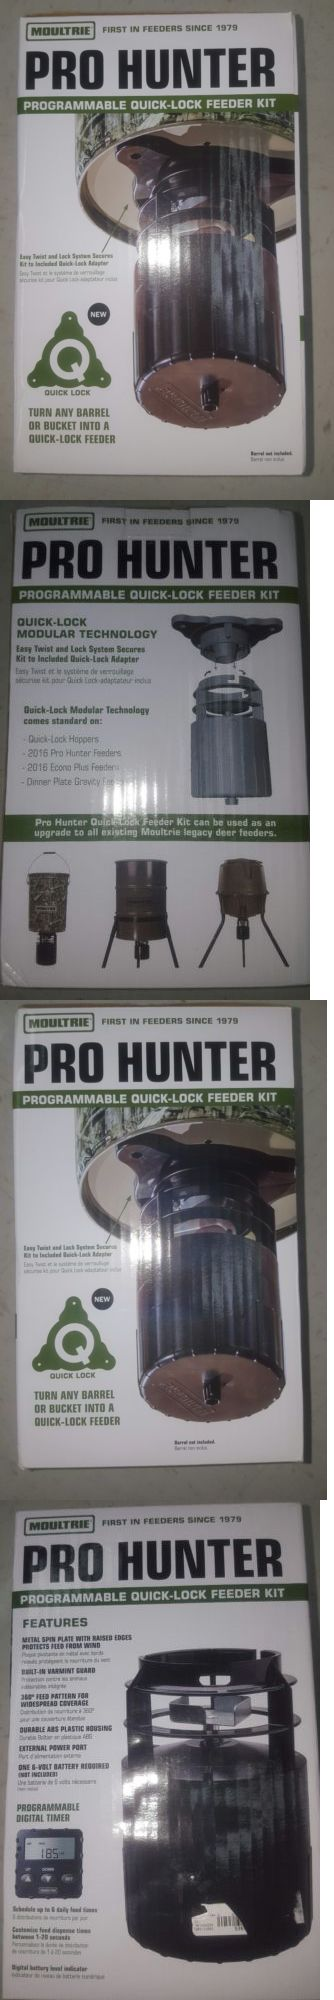 Game Feeders and Feed 52504: Moultrie Programmable Pro Hunter Quick-Lock Tripod Deer Feeder Kit Mfg-13053 -> BUY IT NOW ONLY: $31.99 on eBay!